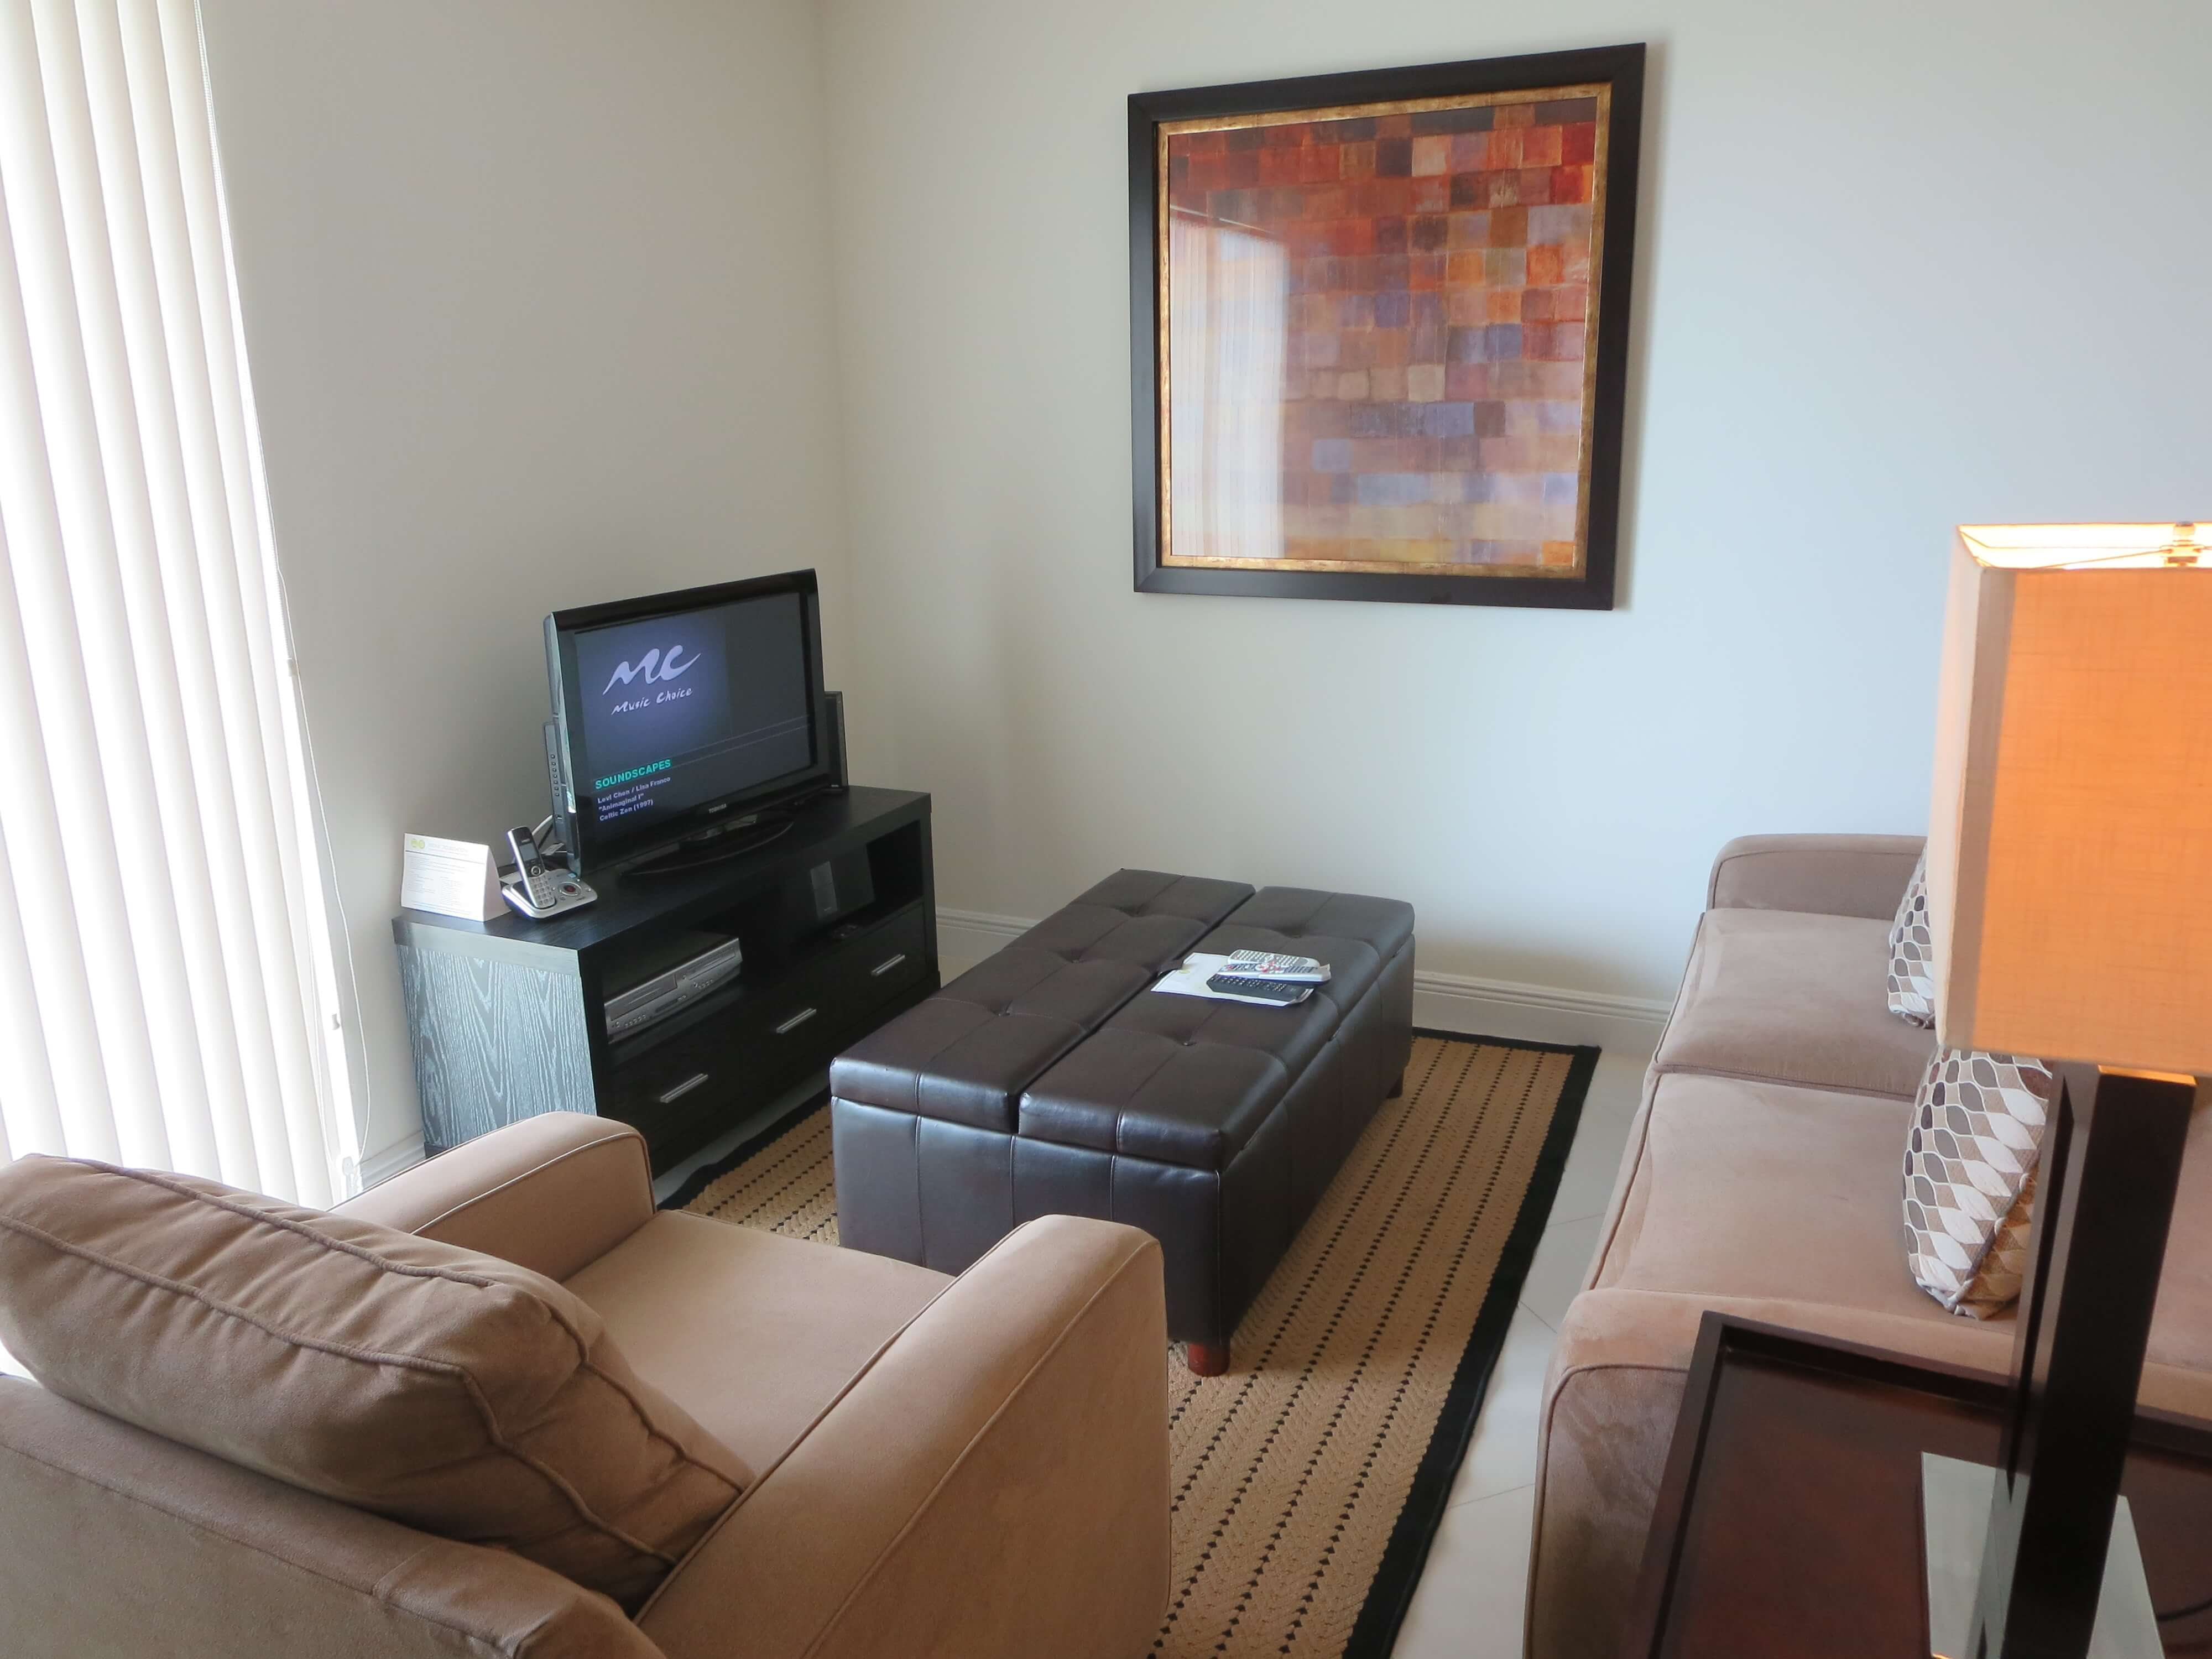 miami lakes furnished 1 bedroom apartment for rent 5760